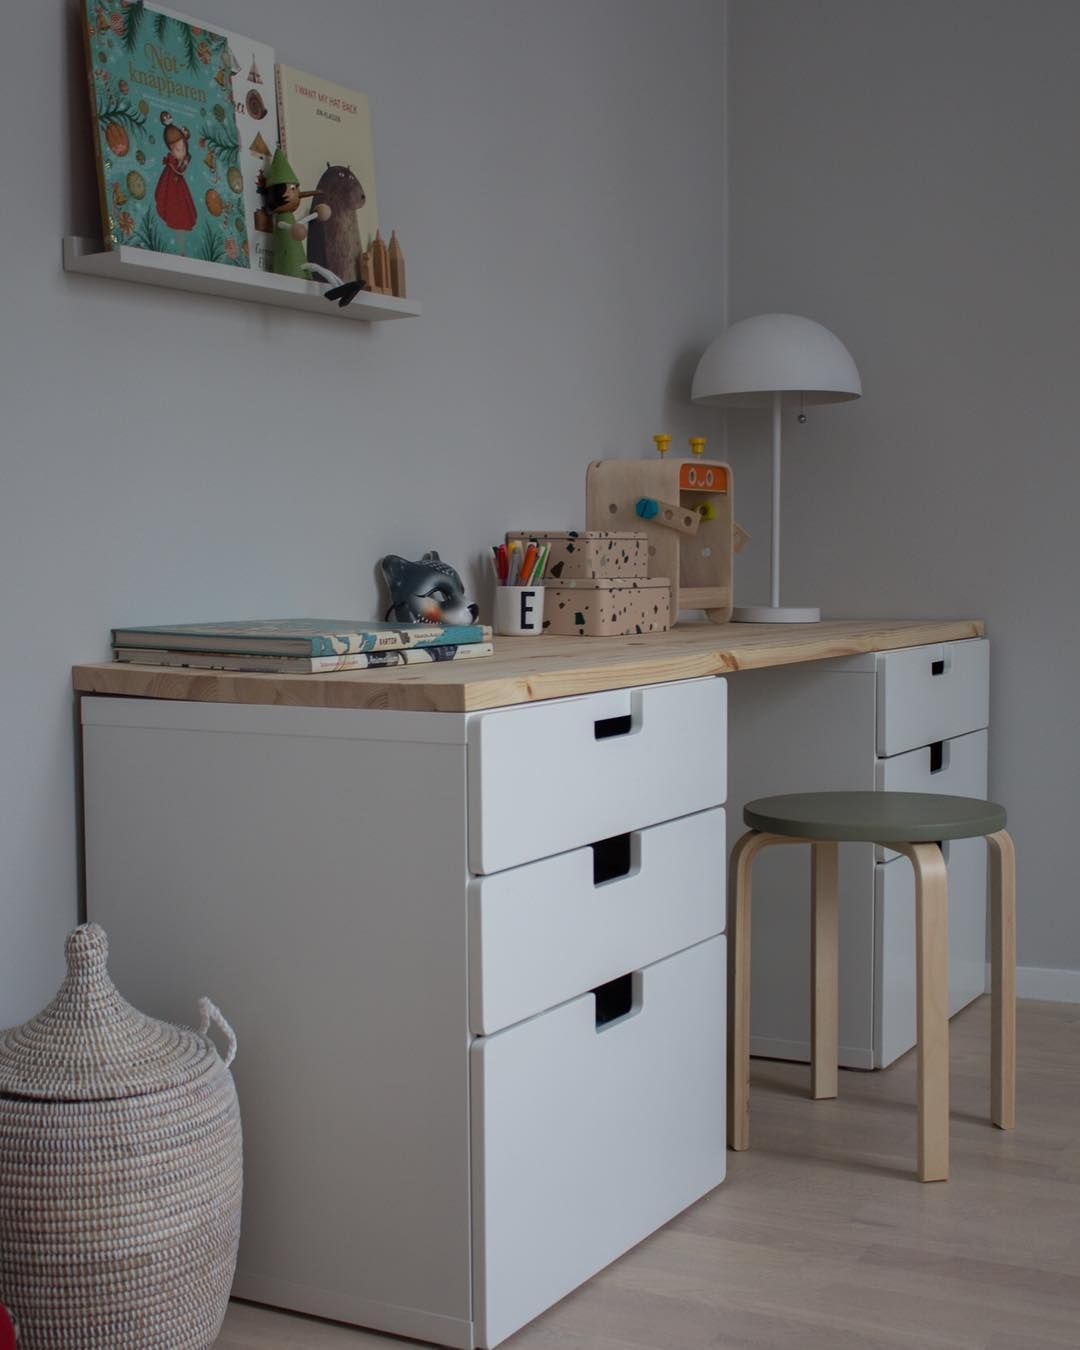 Kinderzimmer Möbel Ikea Kids Room With Ikea Furniture Photography And Styling By